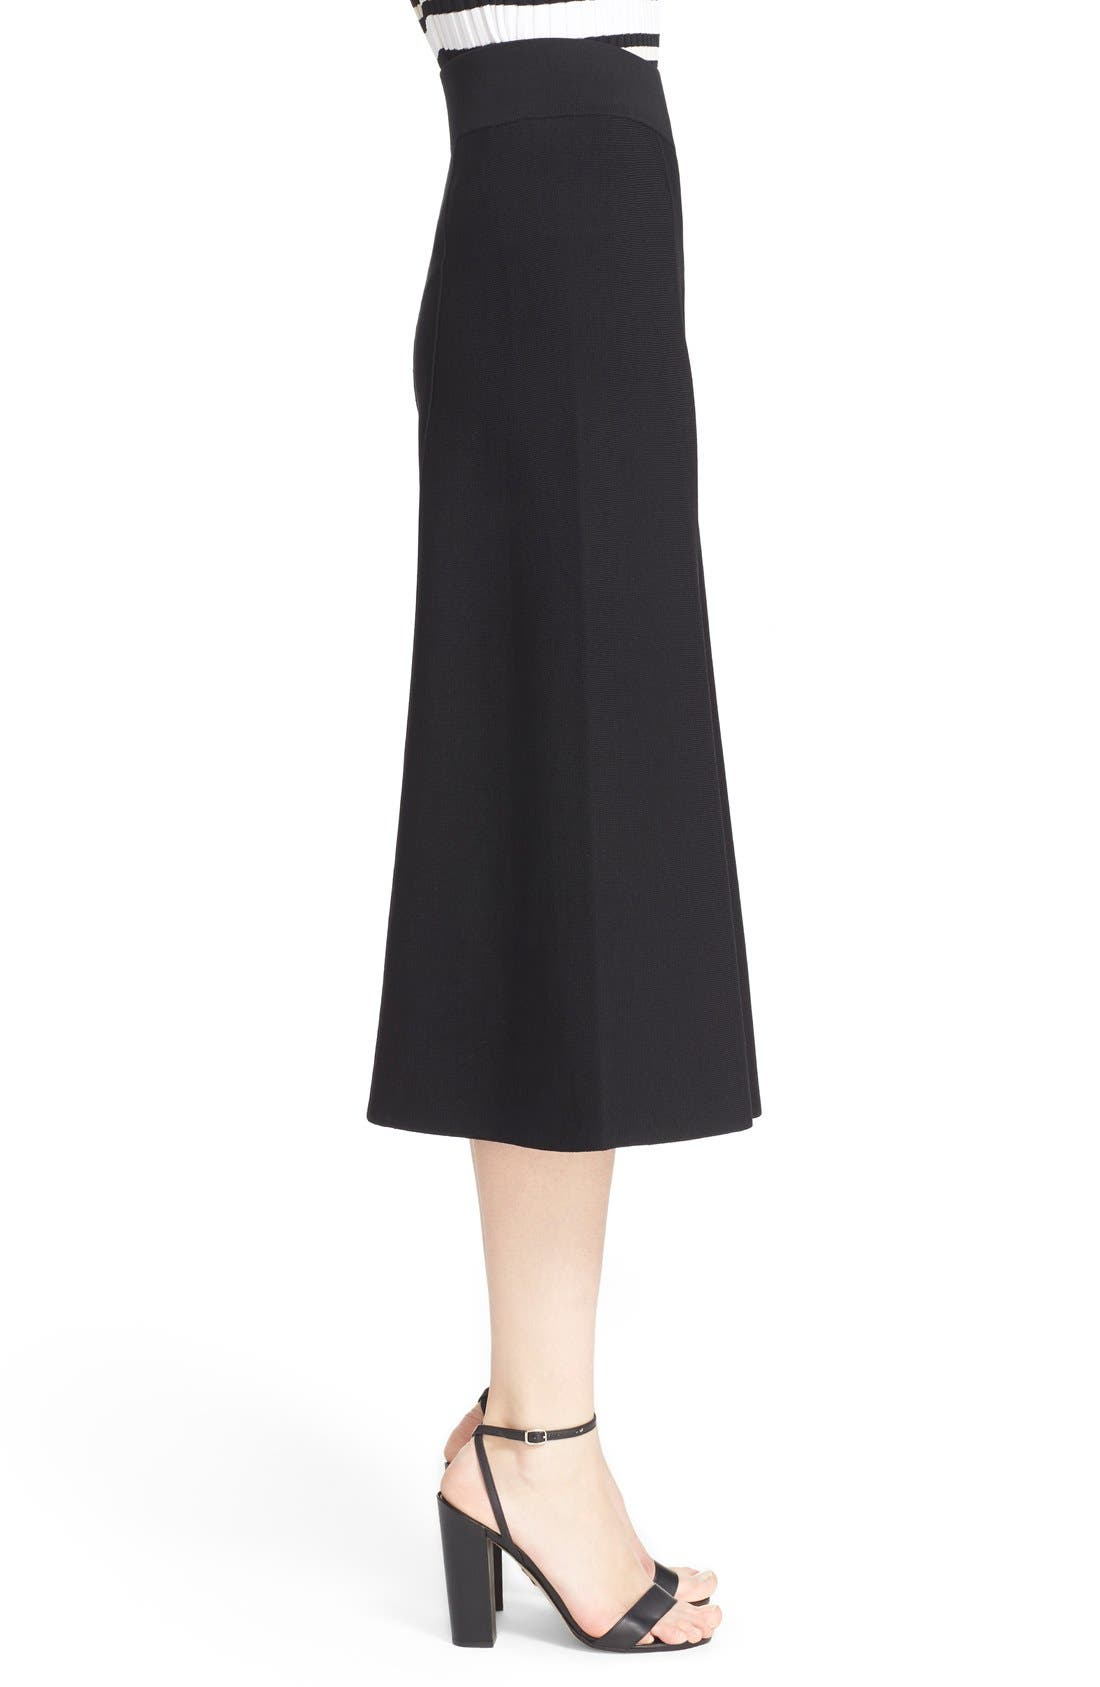 MILLY, Knit Culottes, Alternate thumbnail 4, color, 001